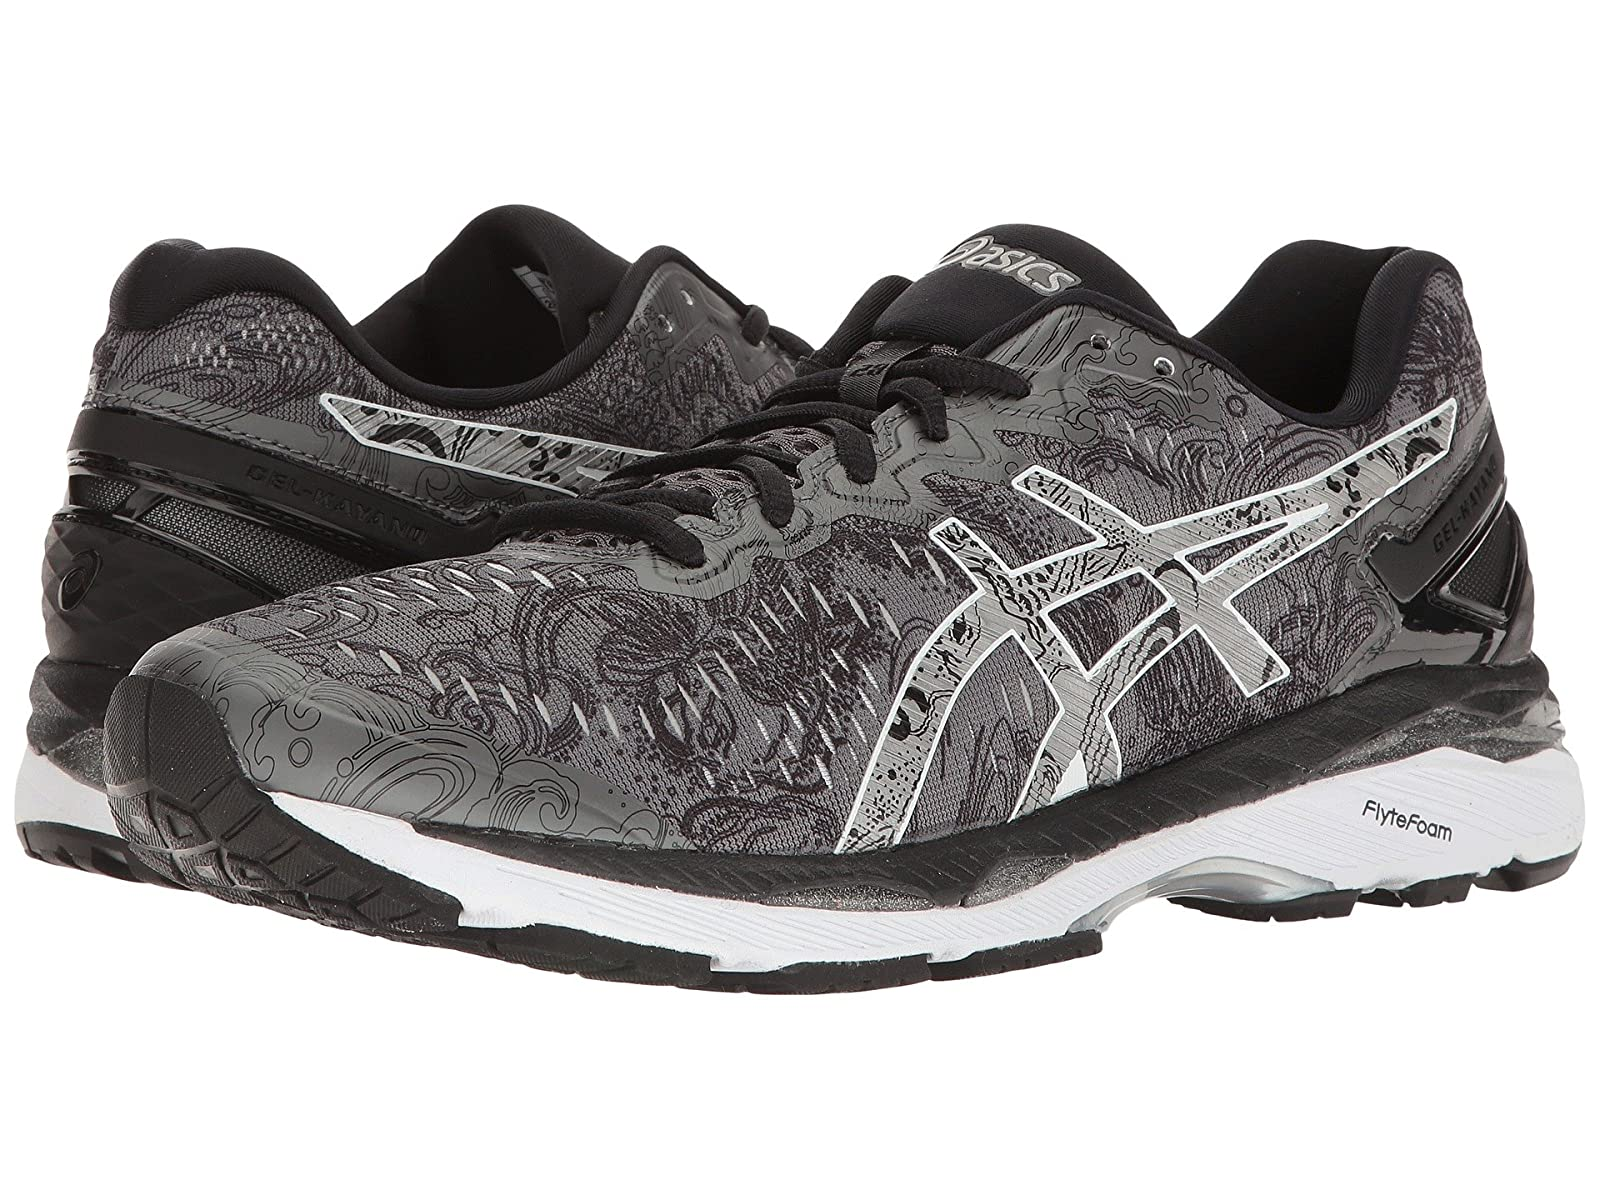 ASICS Gel-Kayano® 23 Lite-ShowCheap and distinctive eye-catching shoes